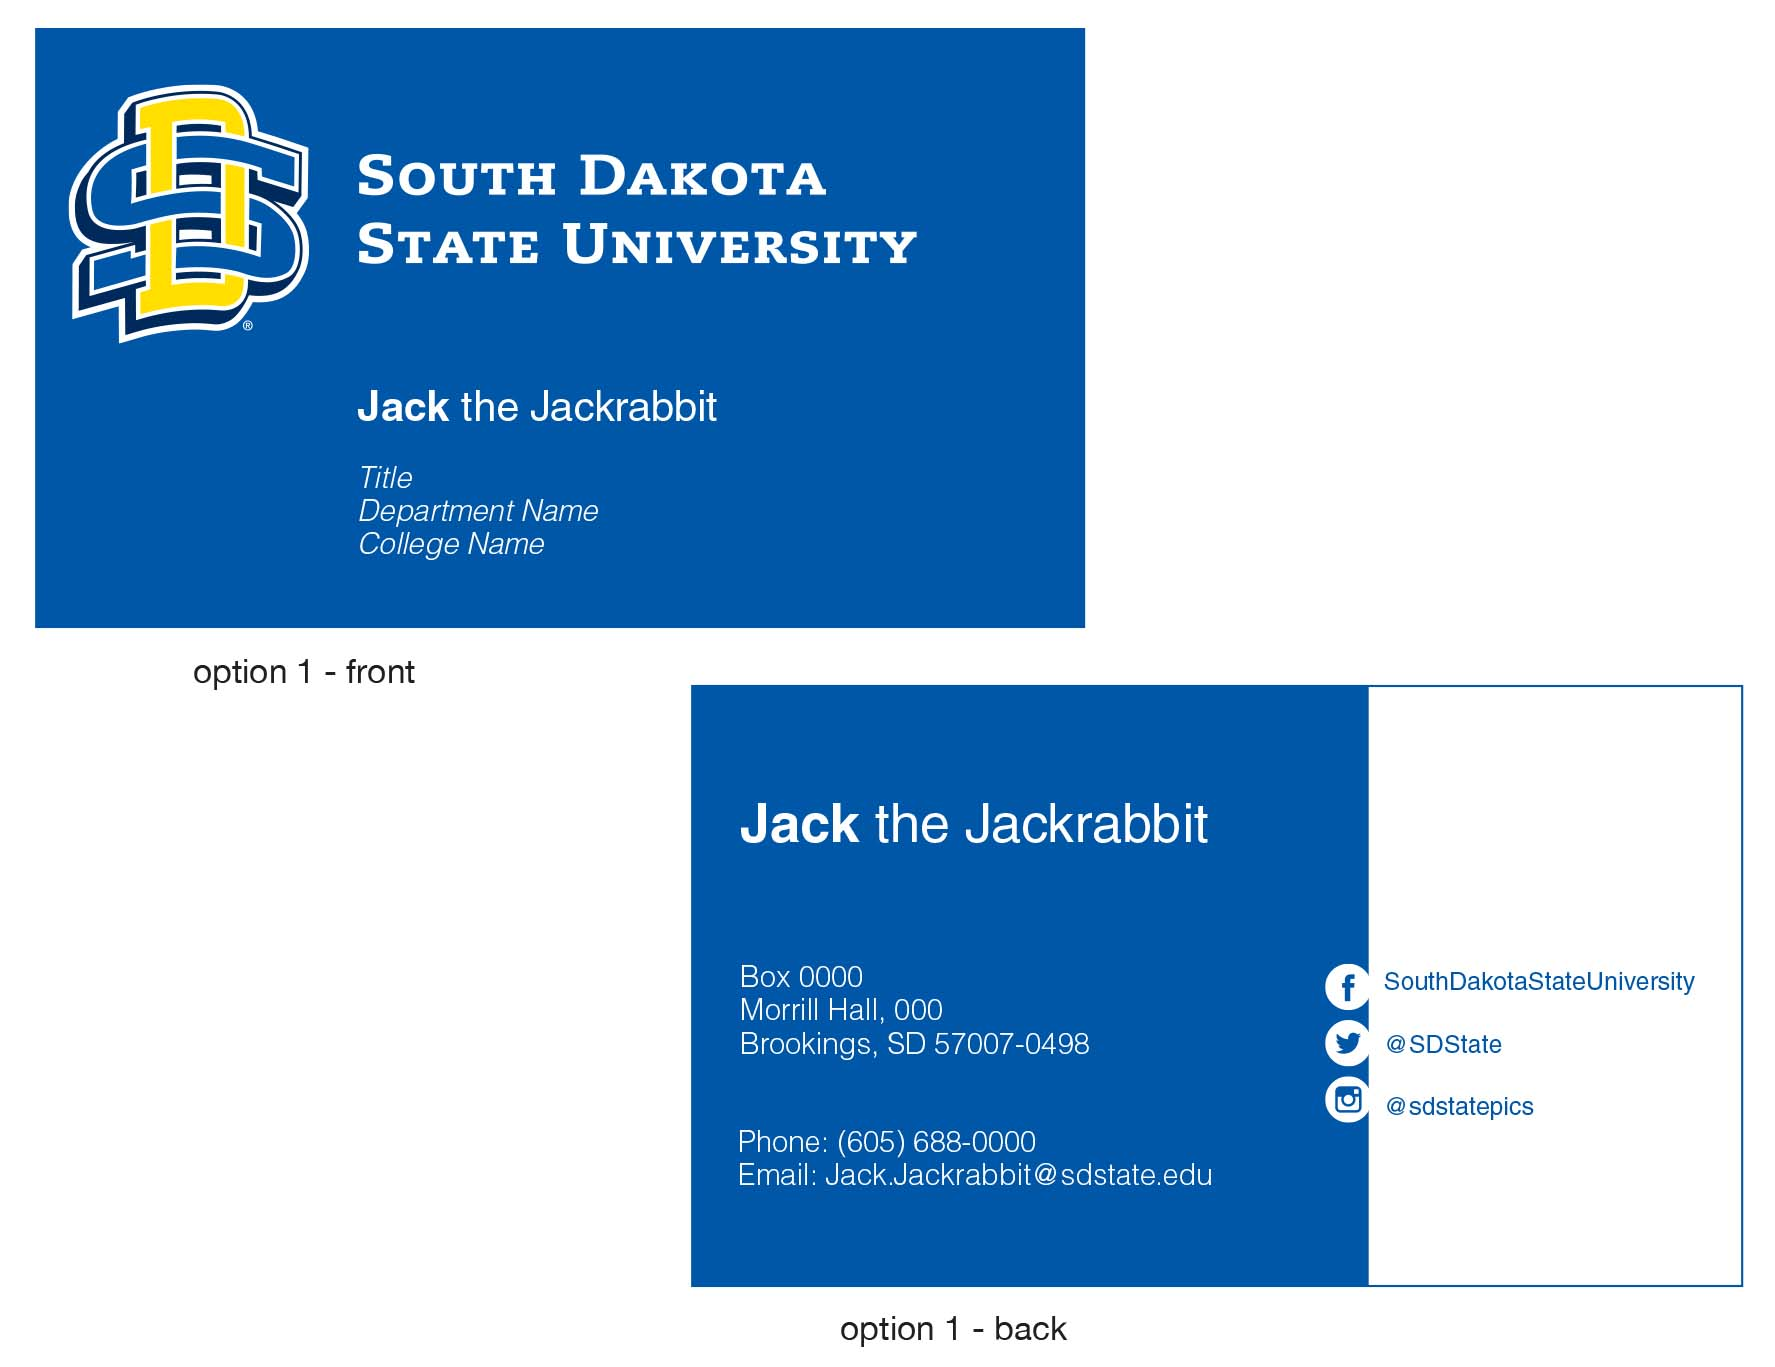 Official Business Cards | South Dakota State University